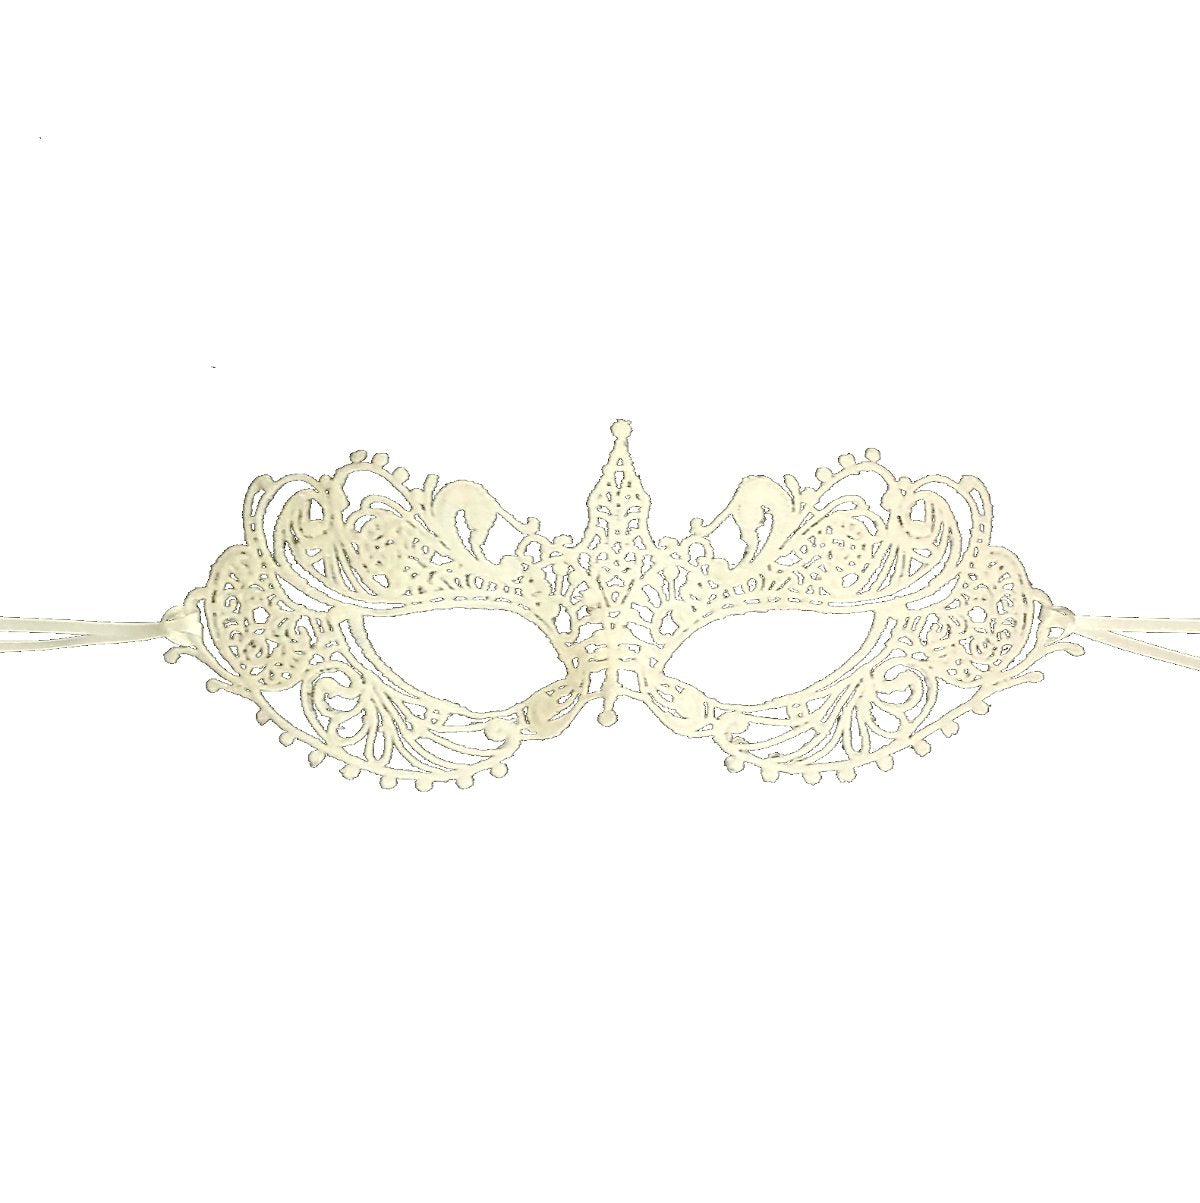 Samantha Peach Masquerade Mask - The Authentic 50 Shades Darker Ana Lace Anastasia Goddess Mask (Ivory)